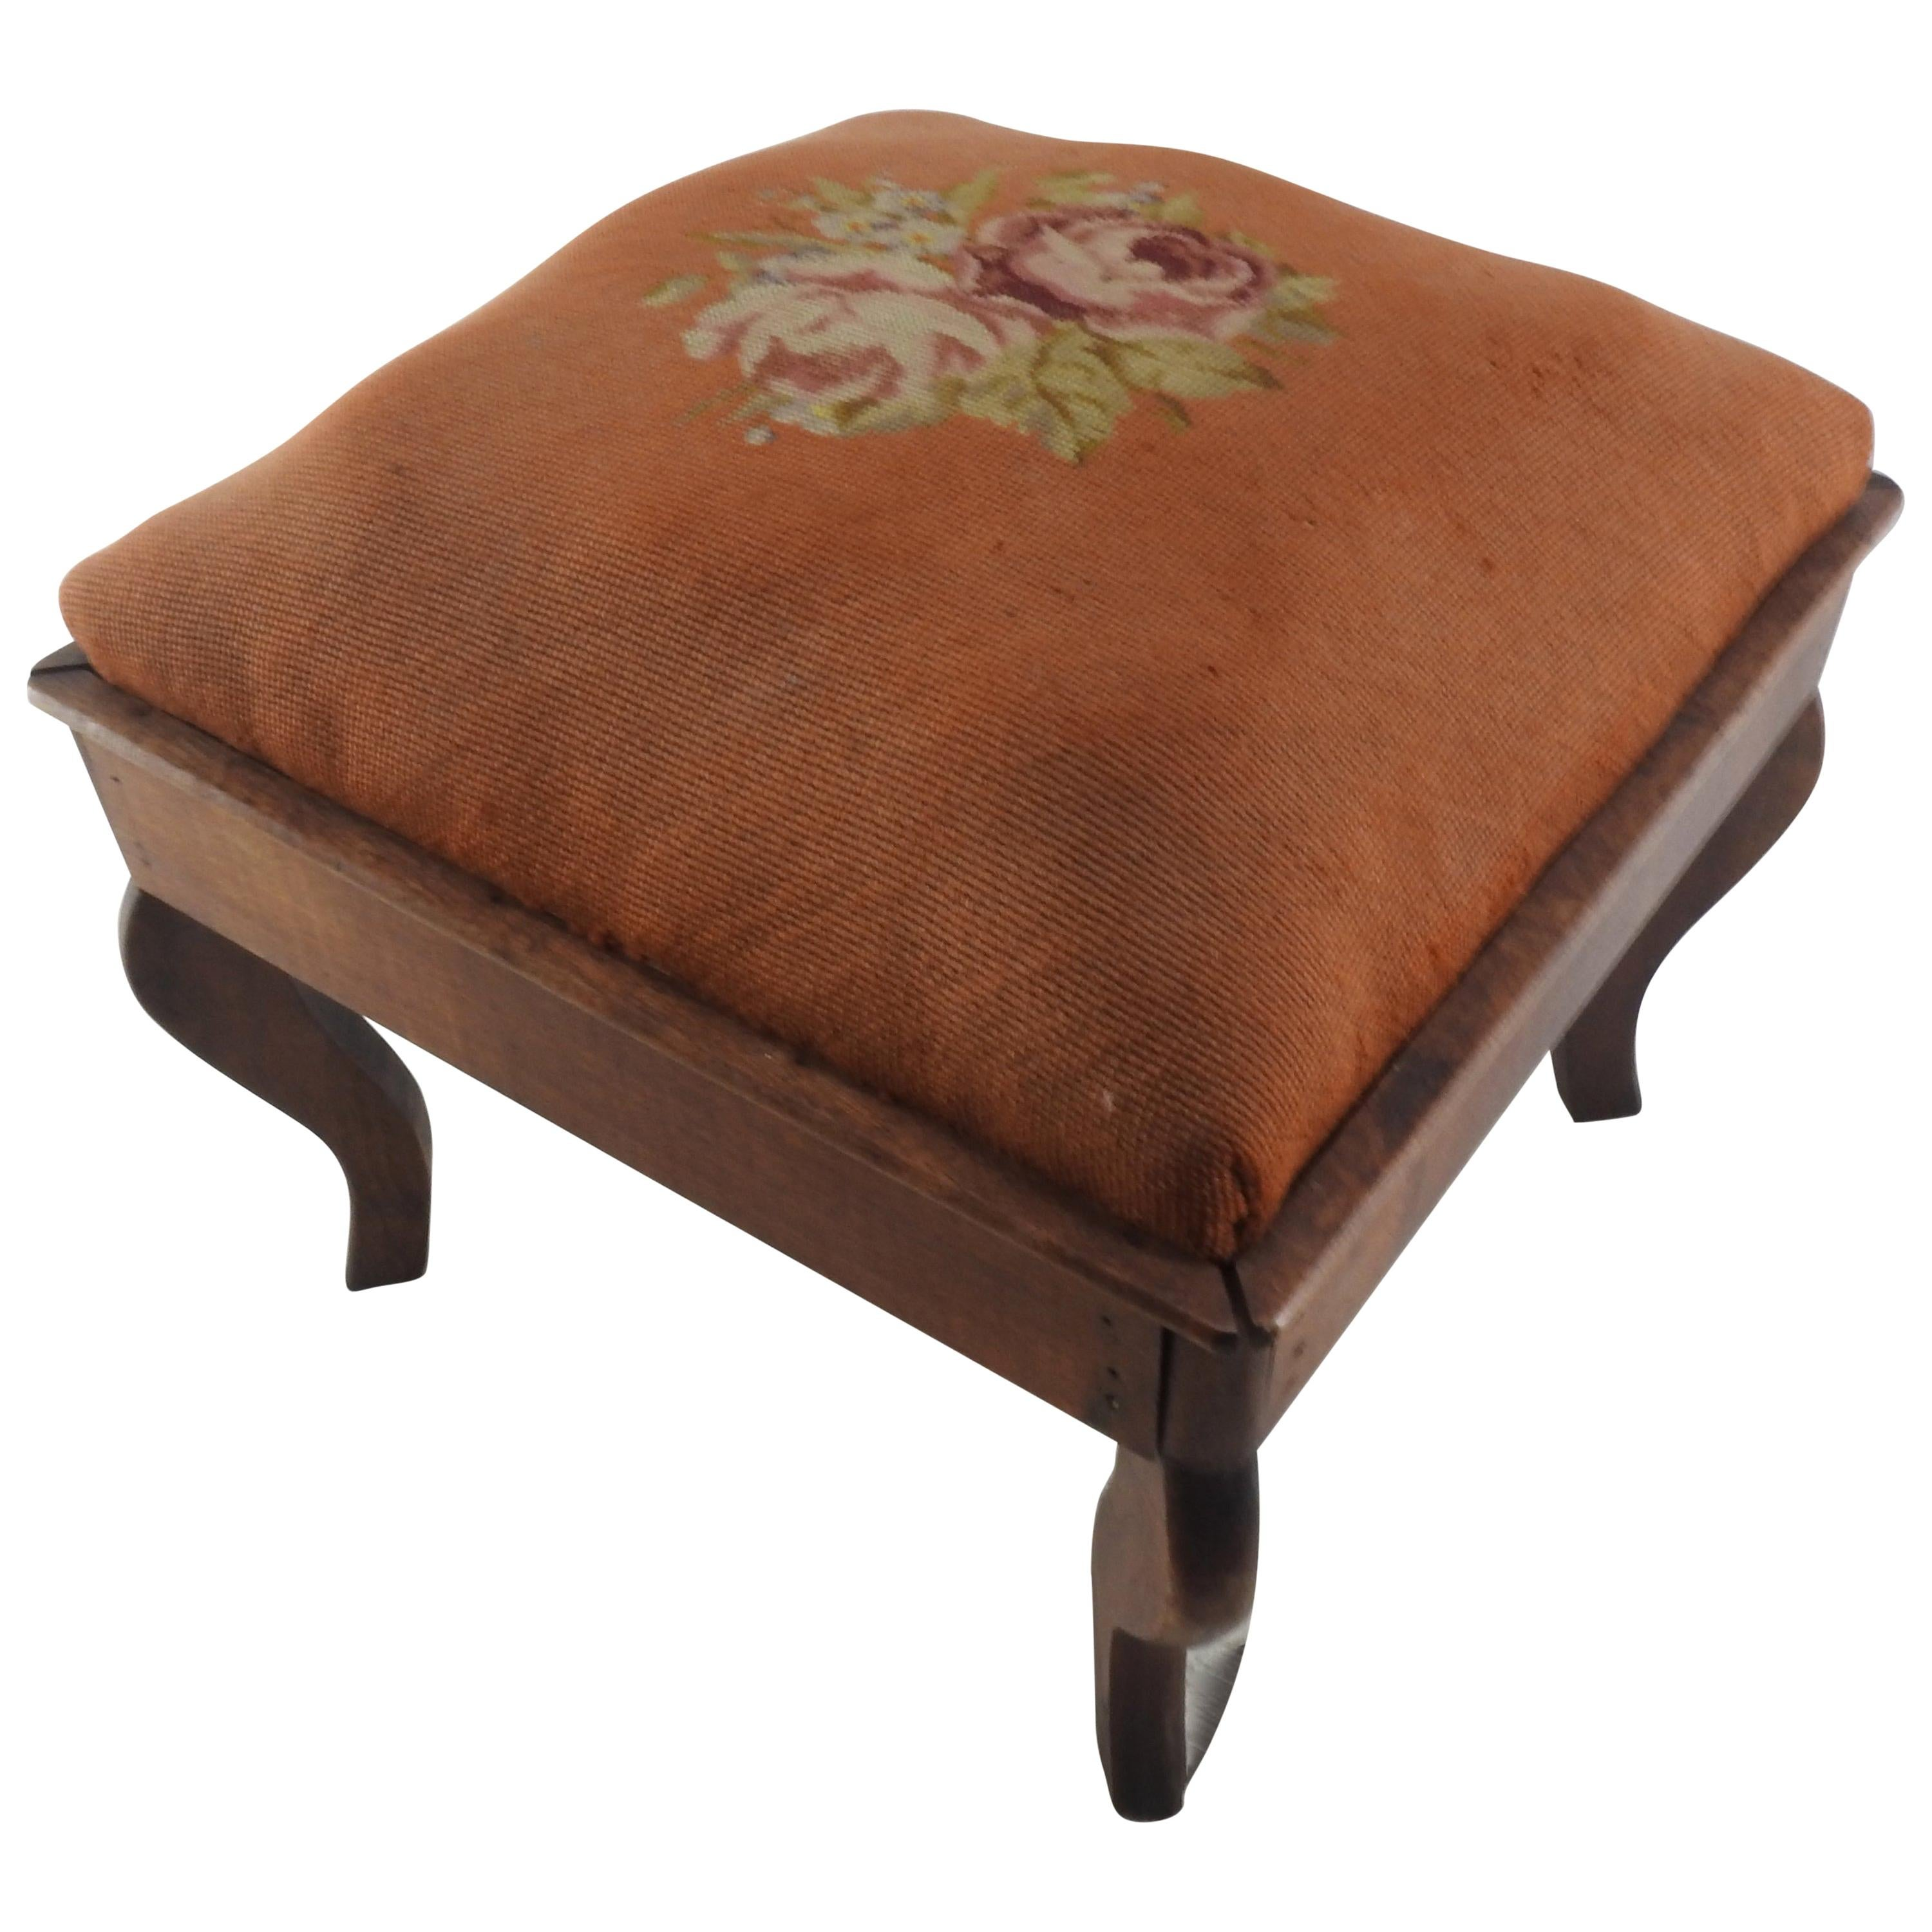 Late 19th Century French Needlepoint Foot Stool